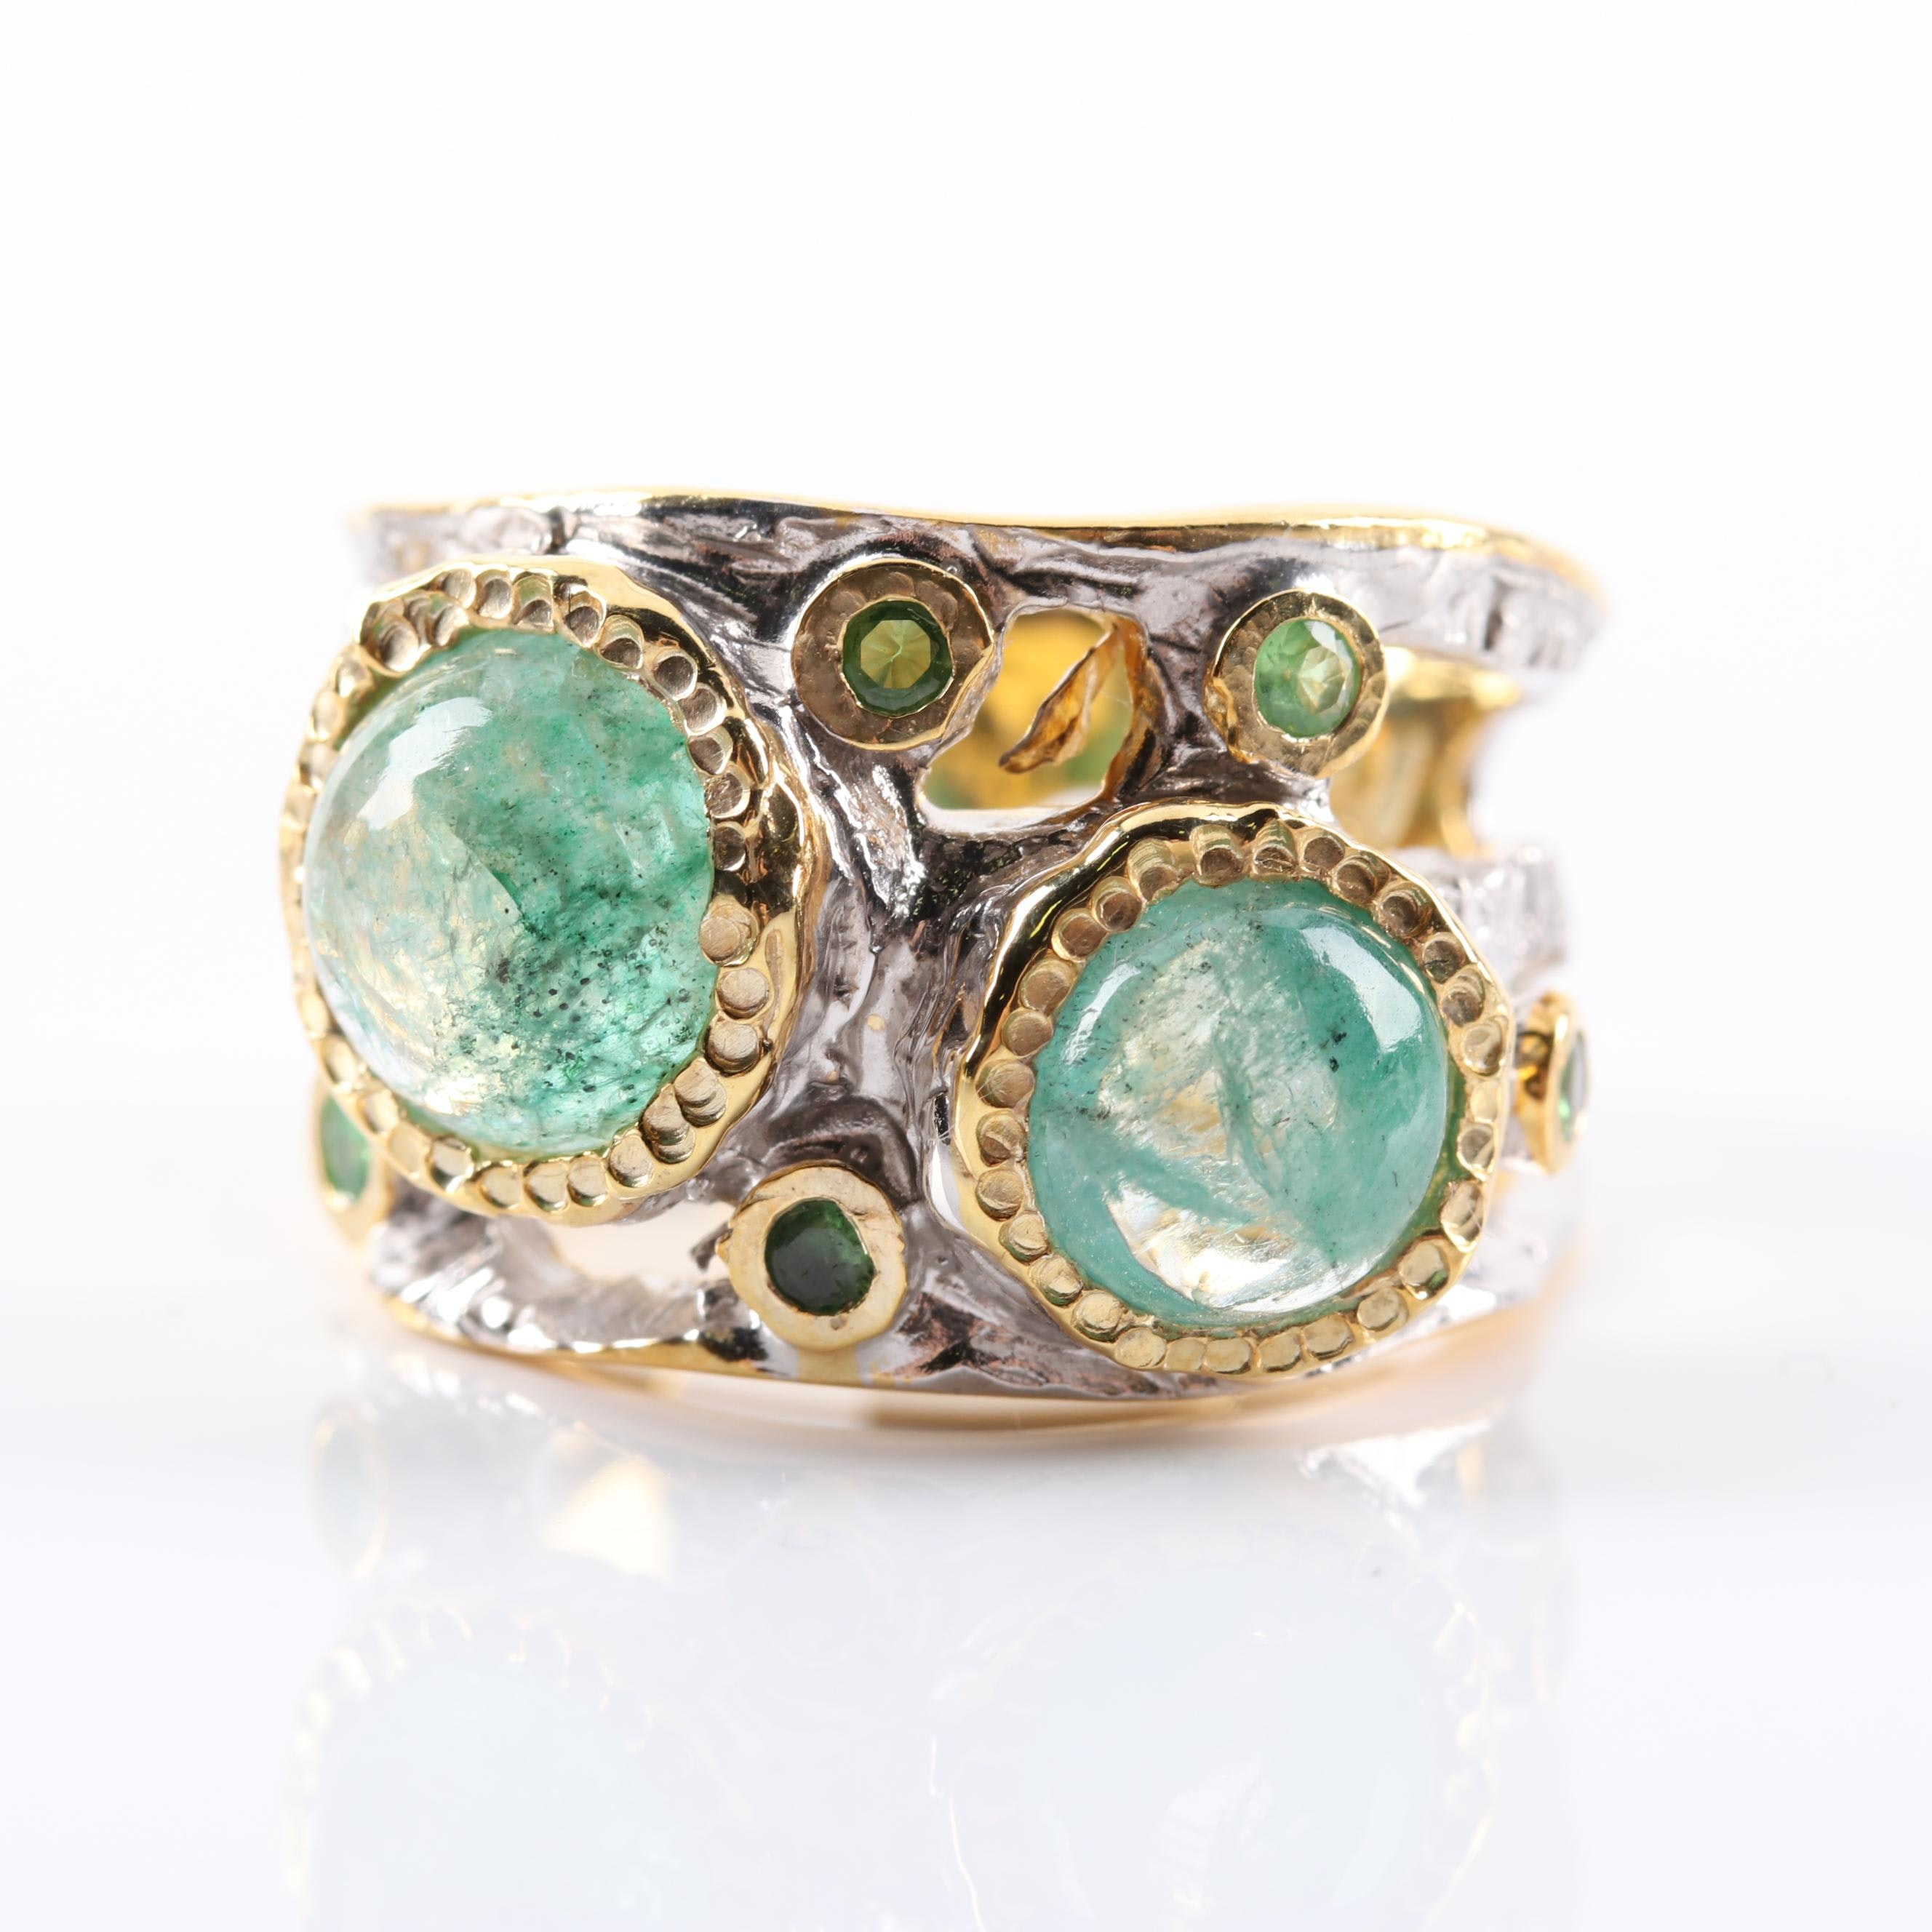 Sterling Silver 3.45 CTW Emerald and Peridot Ring With Gold Wash Details